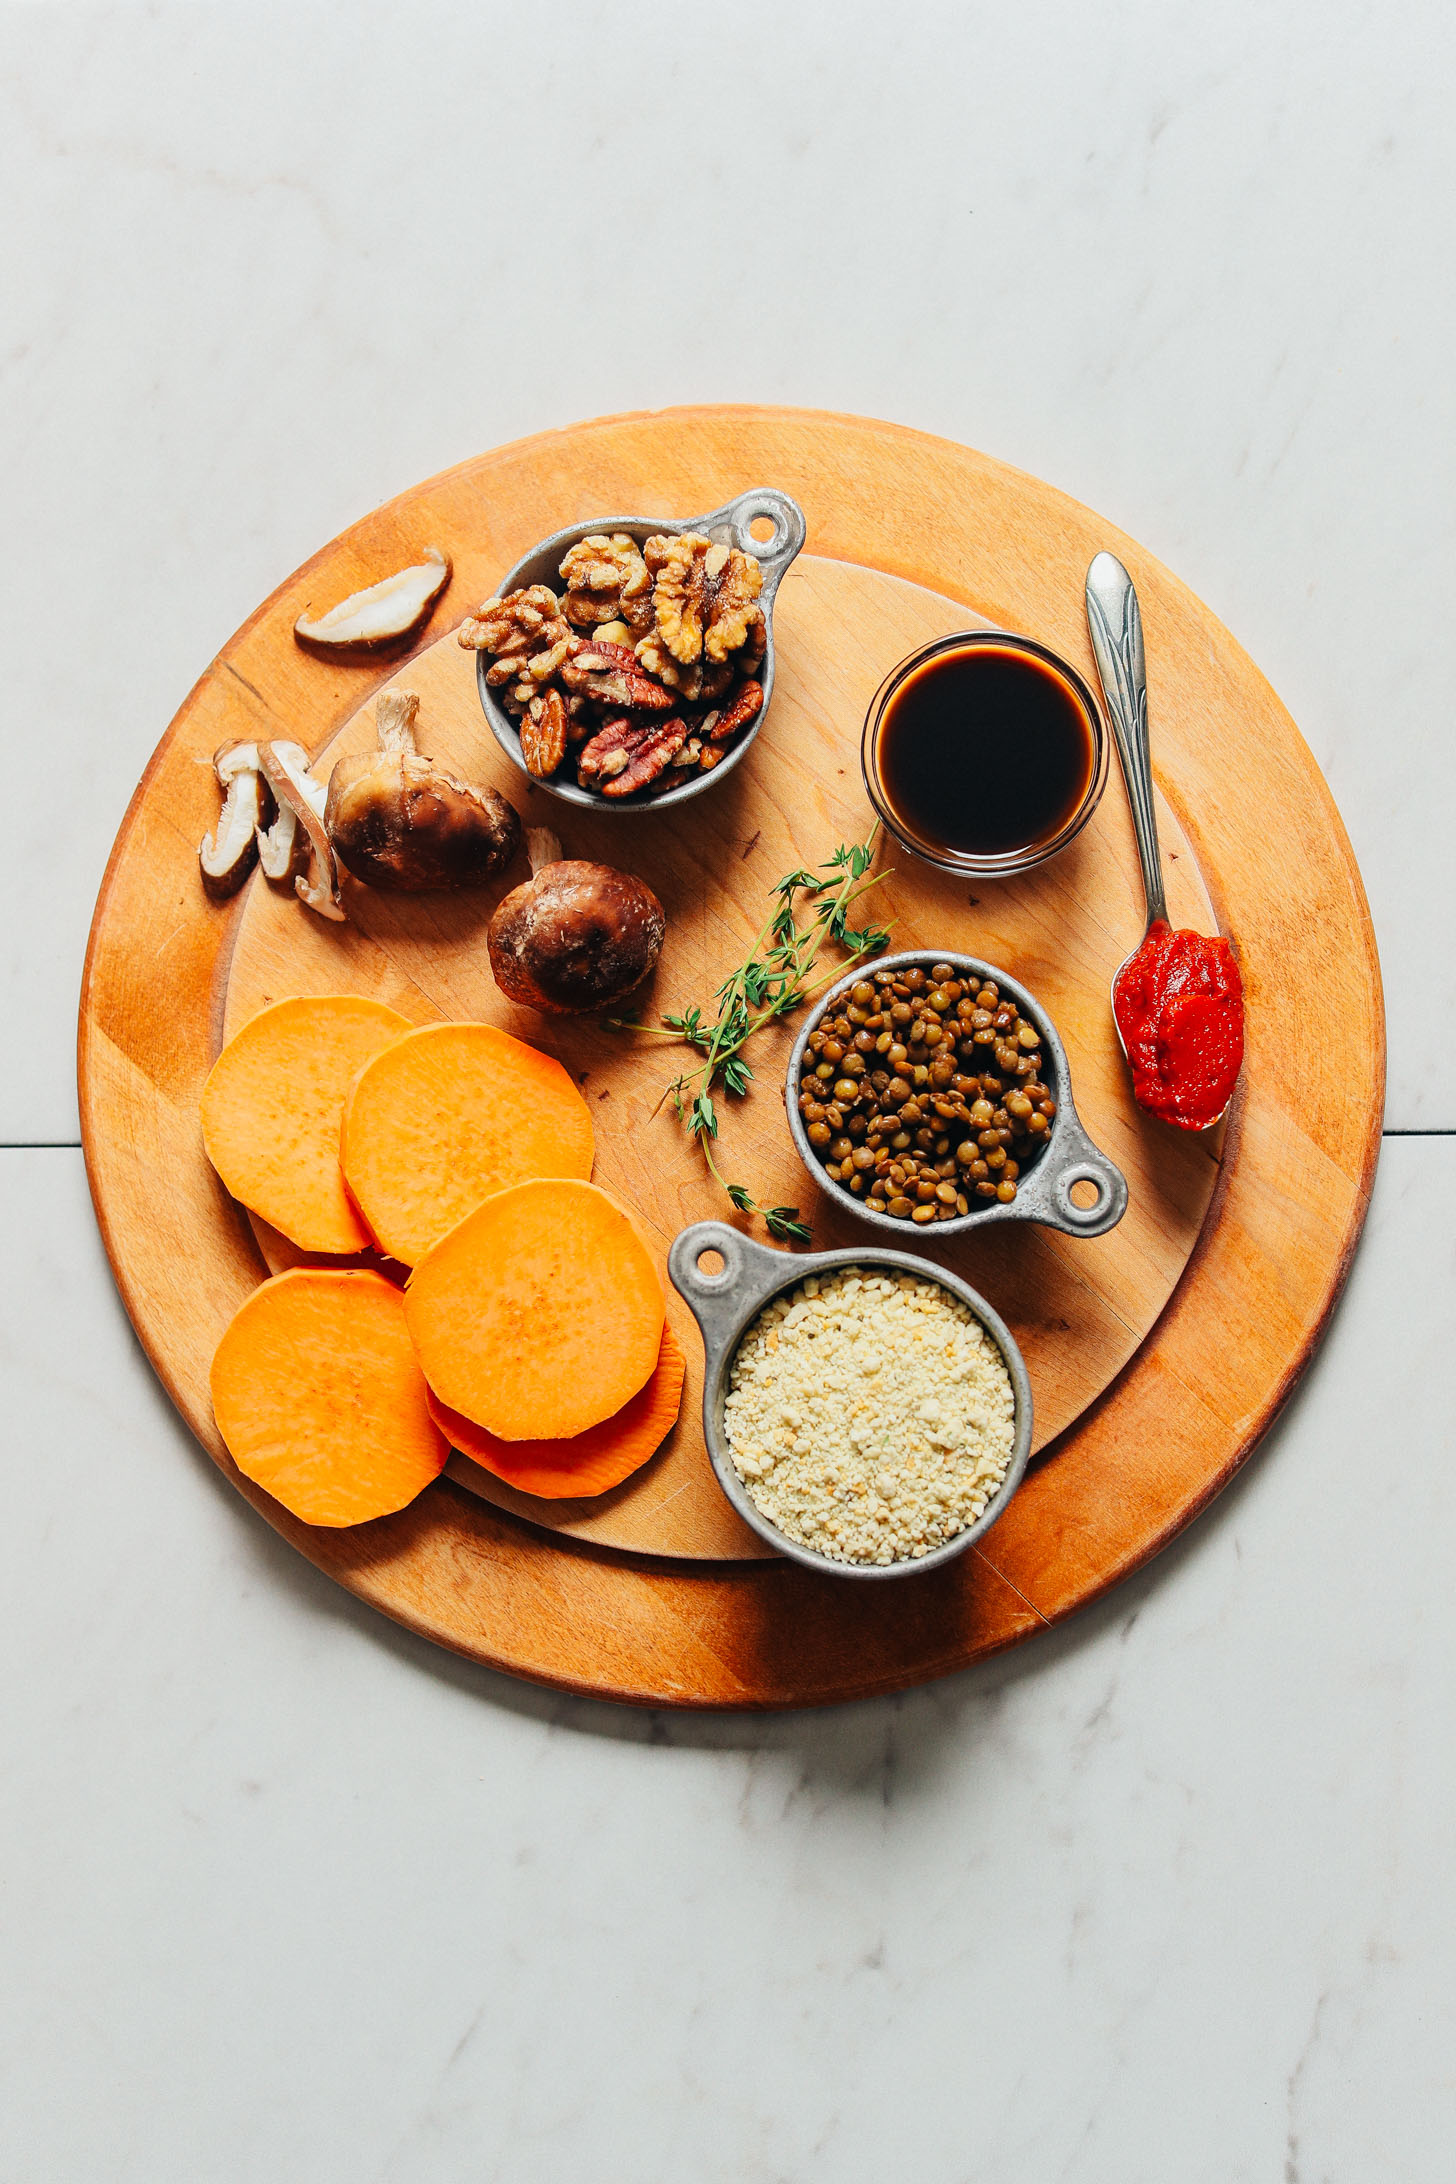 Wood cutting board filled with lentils, sweet potatoes, and other ingredients for making vegan meatloaf